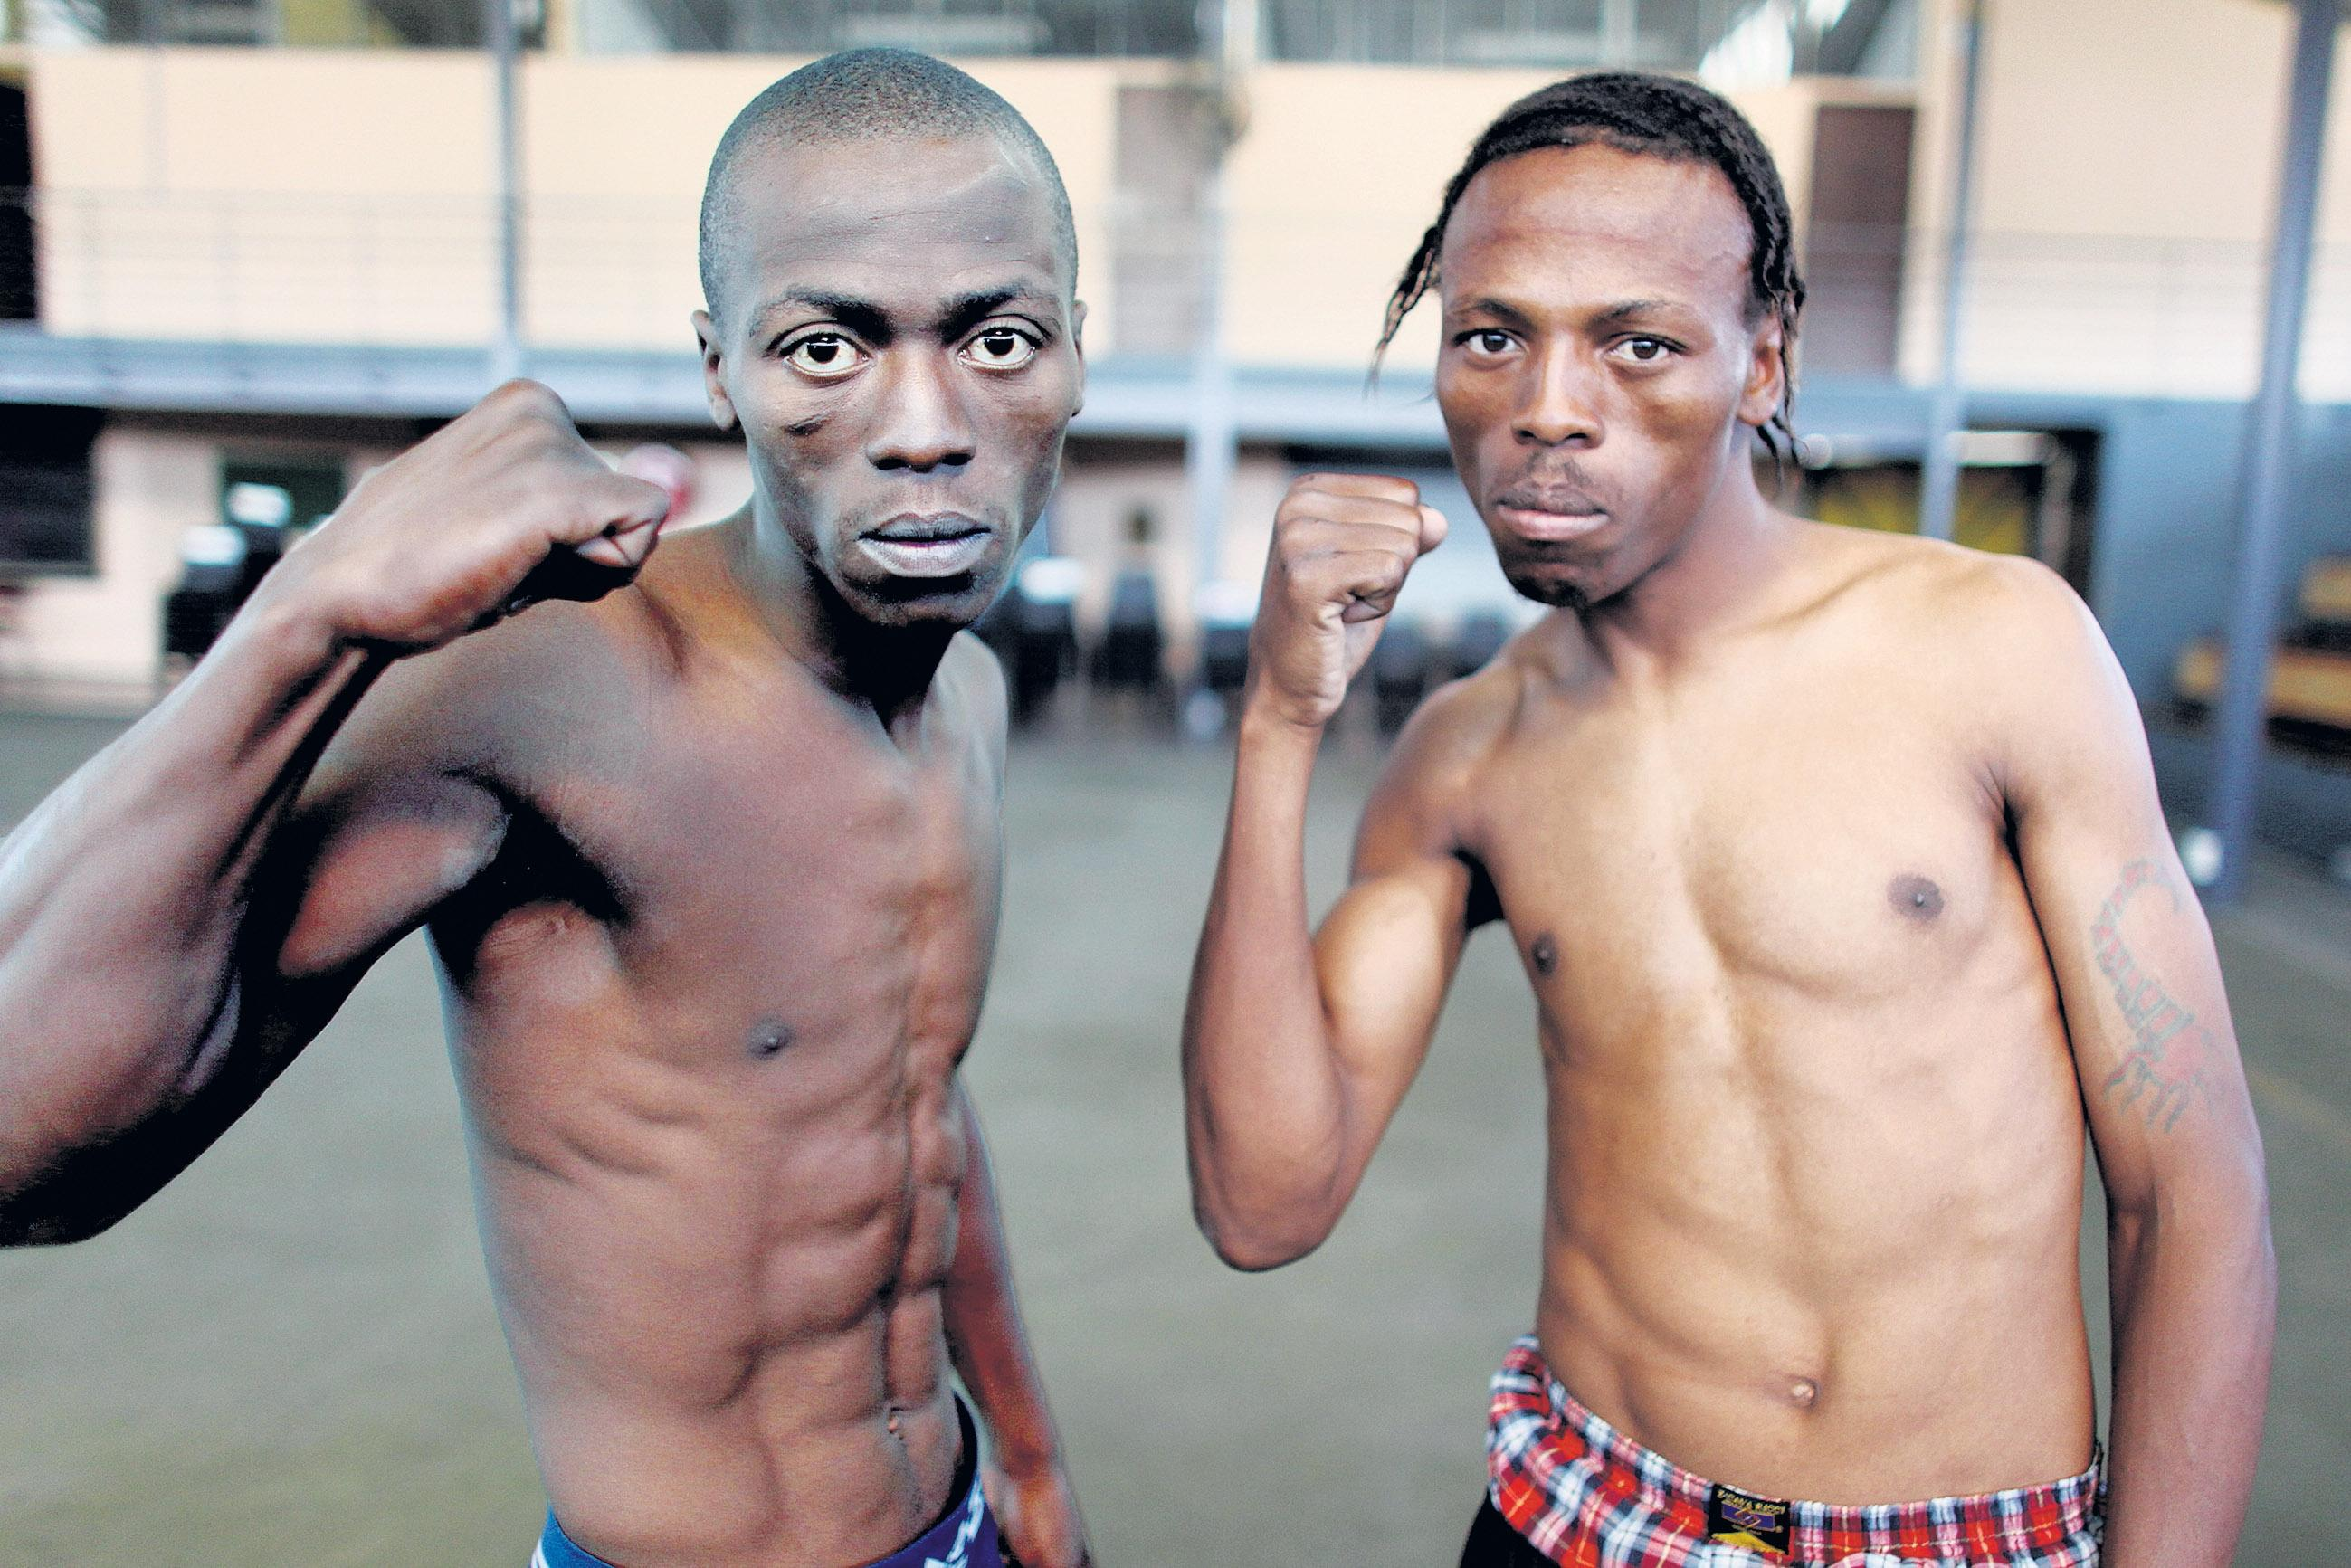 Manelisi Mbilase (right) pictured with Thando Vukuza before their bout in 2009